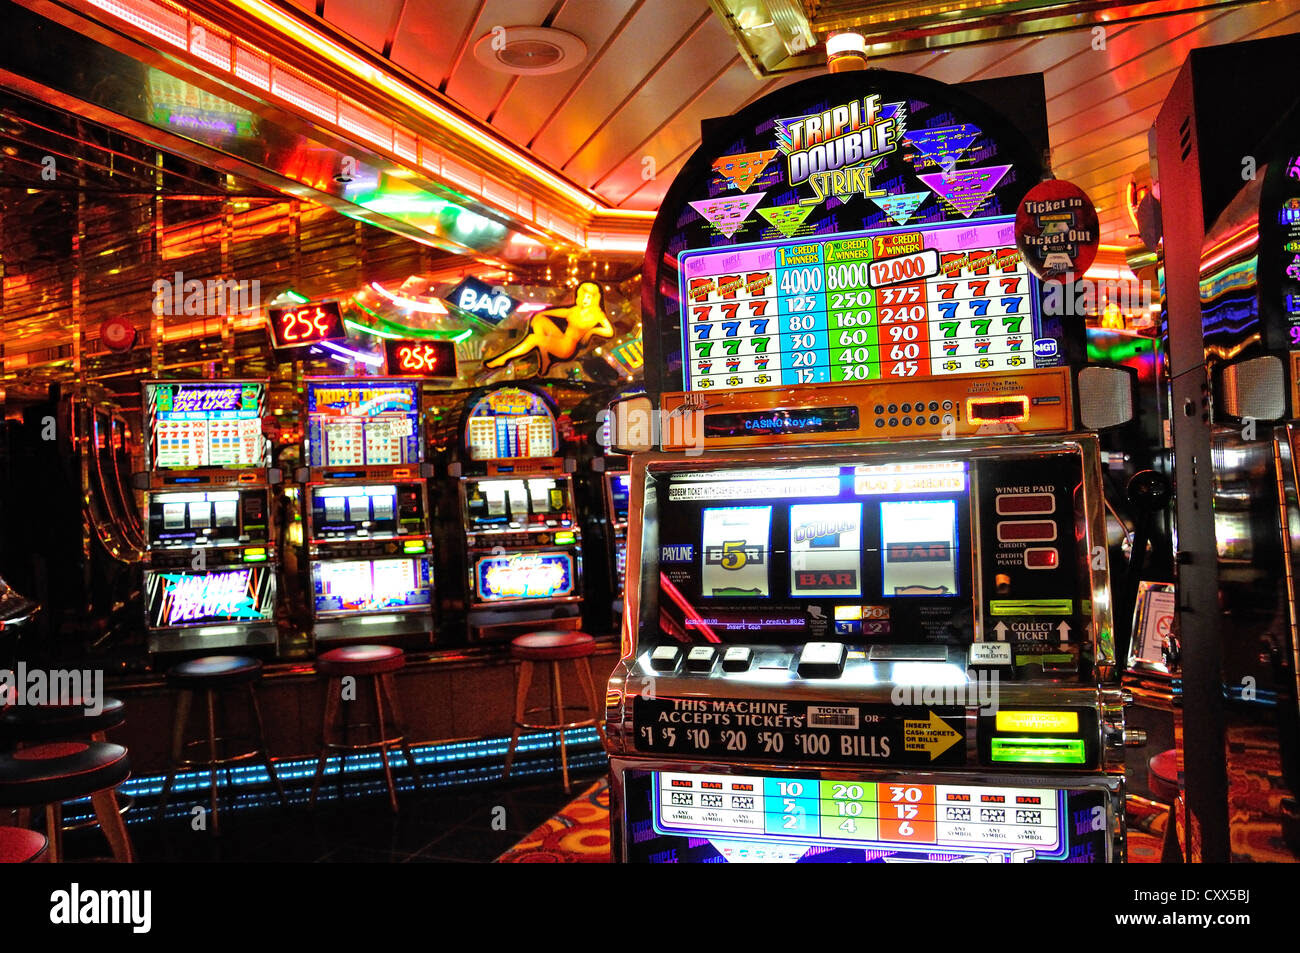 How to play slot machines on cruise ships